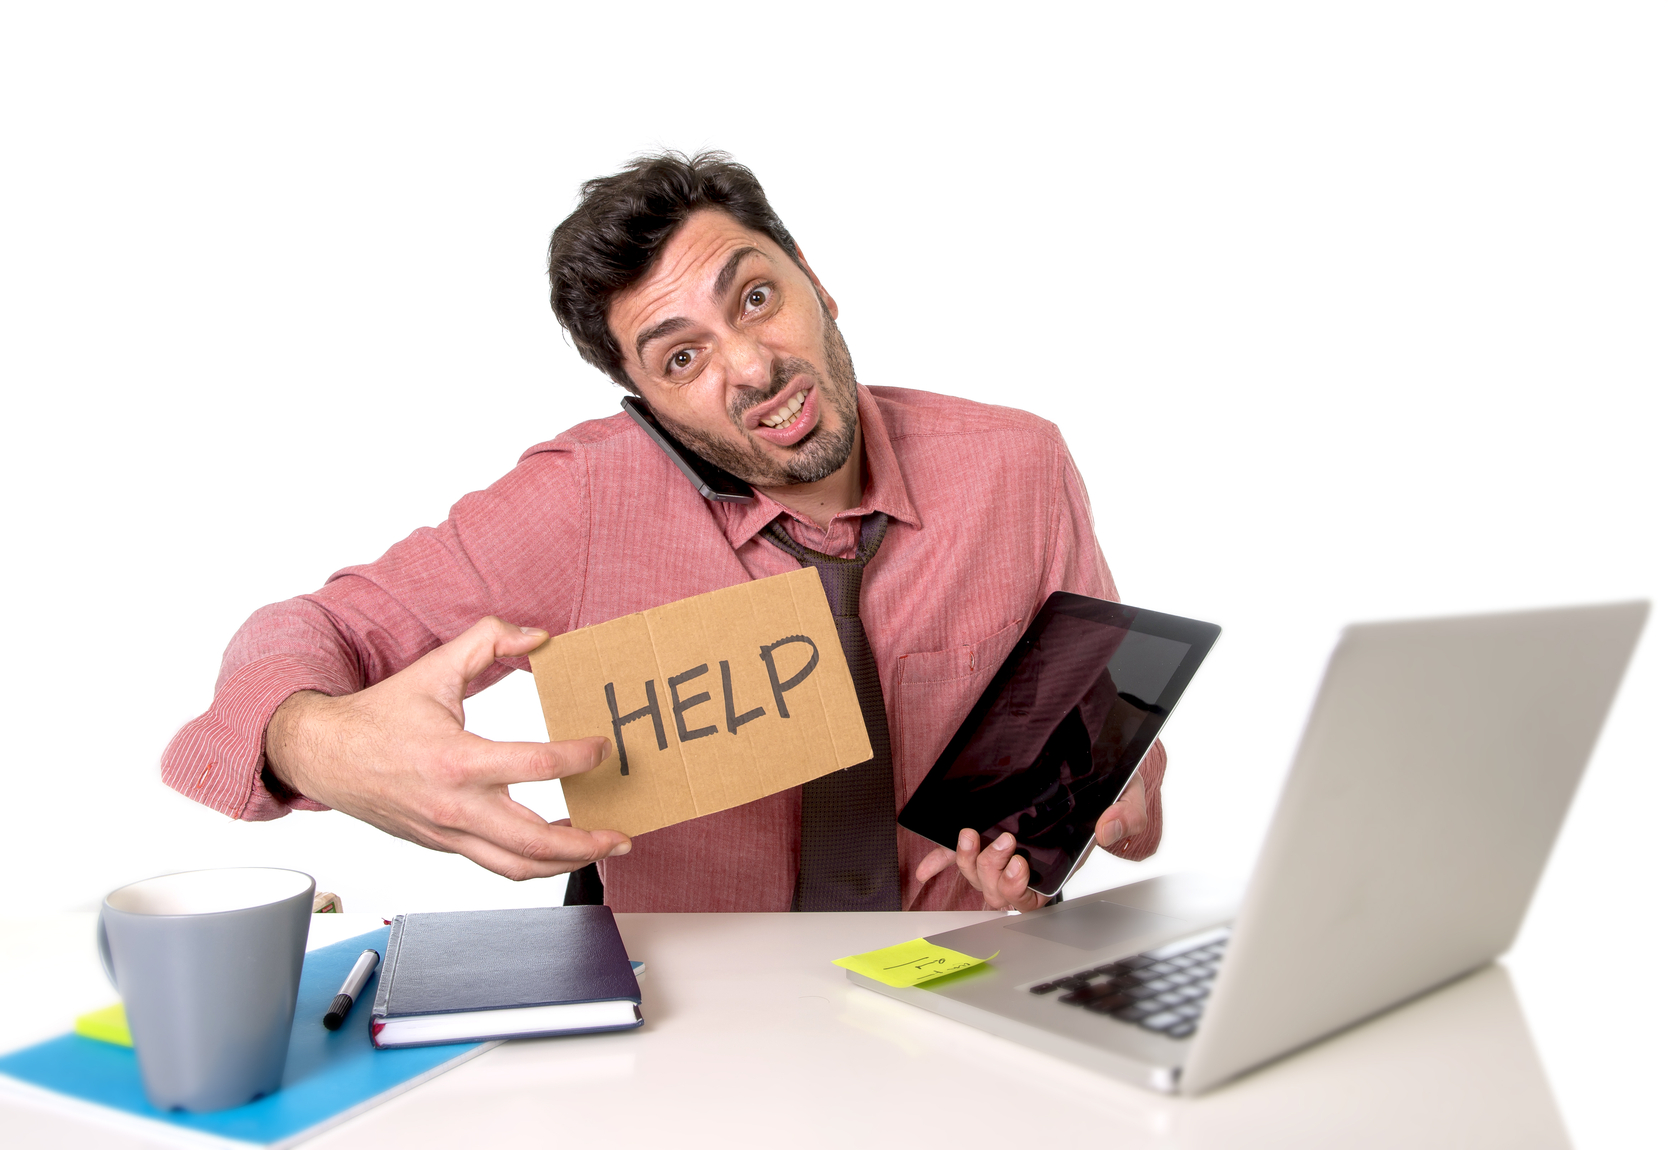 overworked businessman busy working in stress asking for help